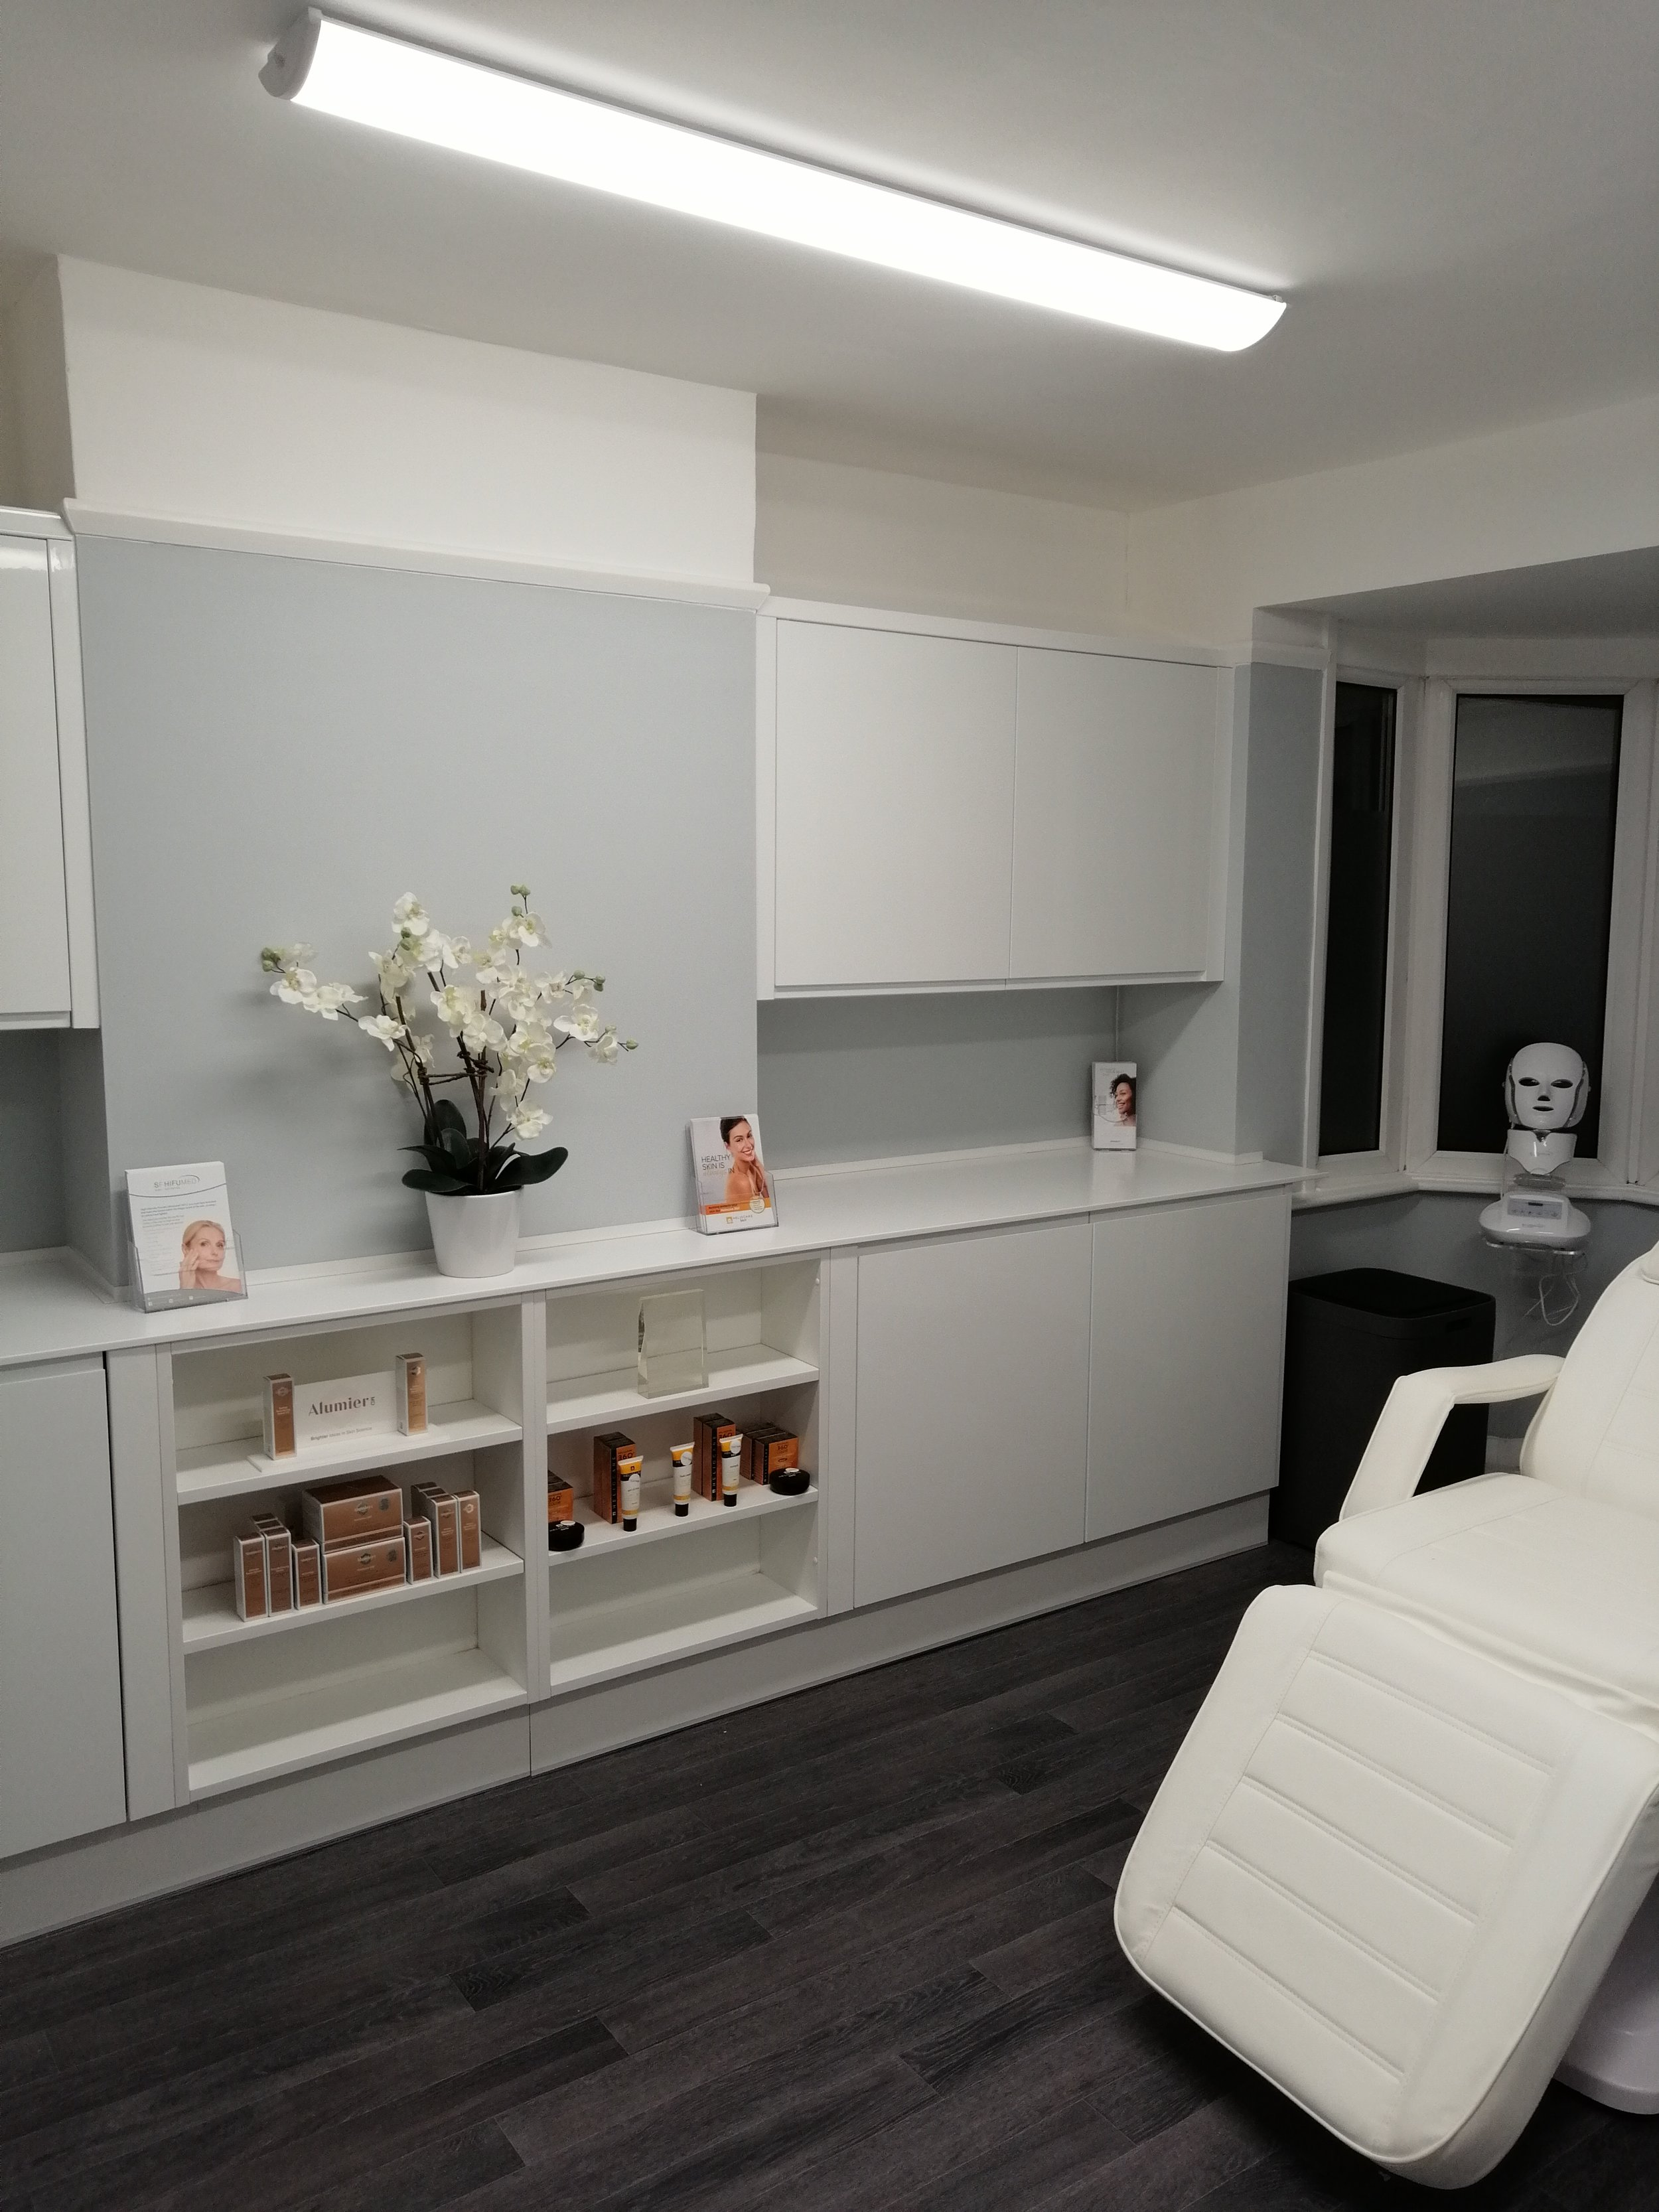 Now Open: The New Relaxing Lumiere MediSpa Skin Clinic in Oxford